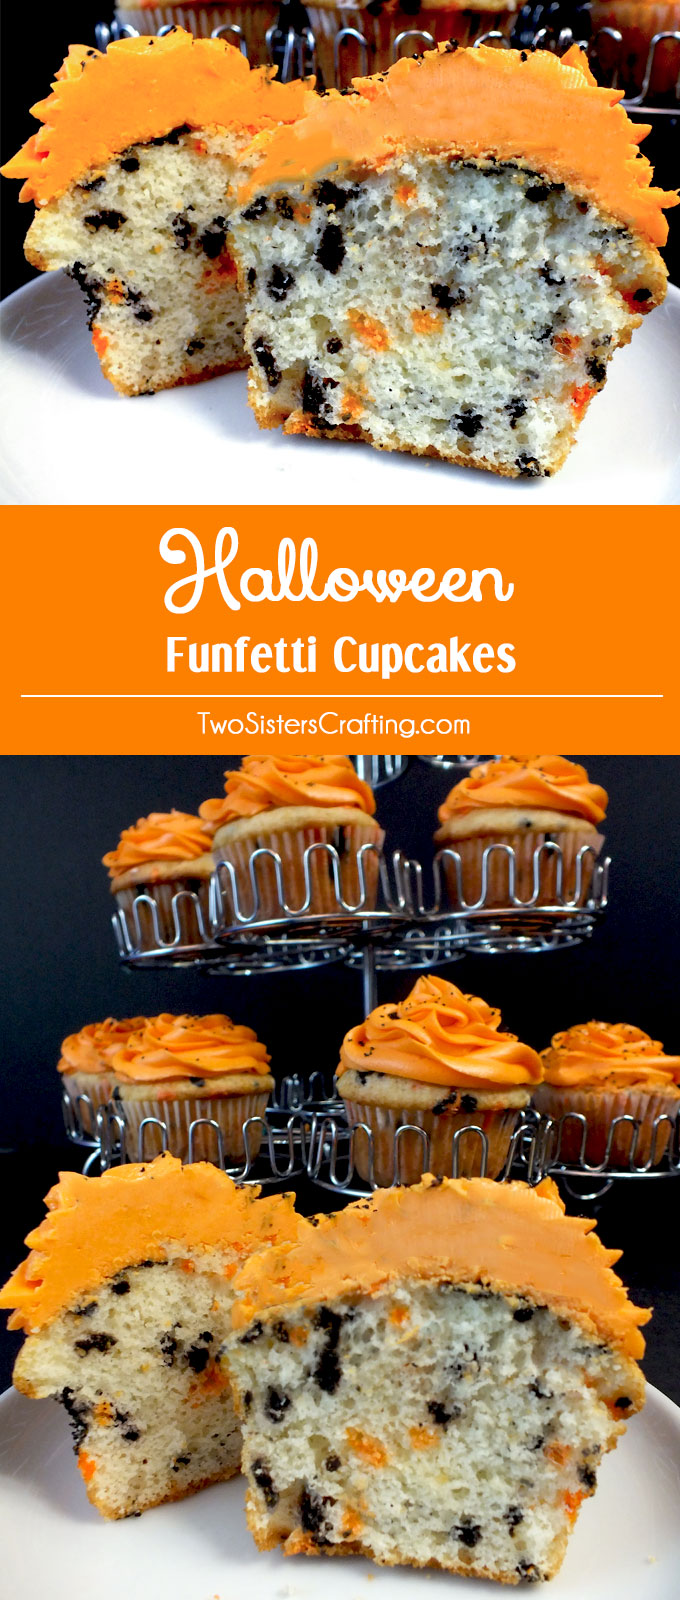 Our Easy Homemade Halloween Funfetti Cupcakes taste so great and are a festive addition to any Halloween Party. Forget about store-bought Funfetti cake mix, make your own colorful sprinkle filled Halloween Cupcakes. Pin this Halloween Dessert for later and follow us for more fun Halloween Food Ideas.